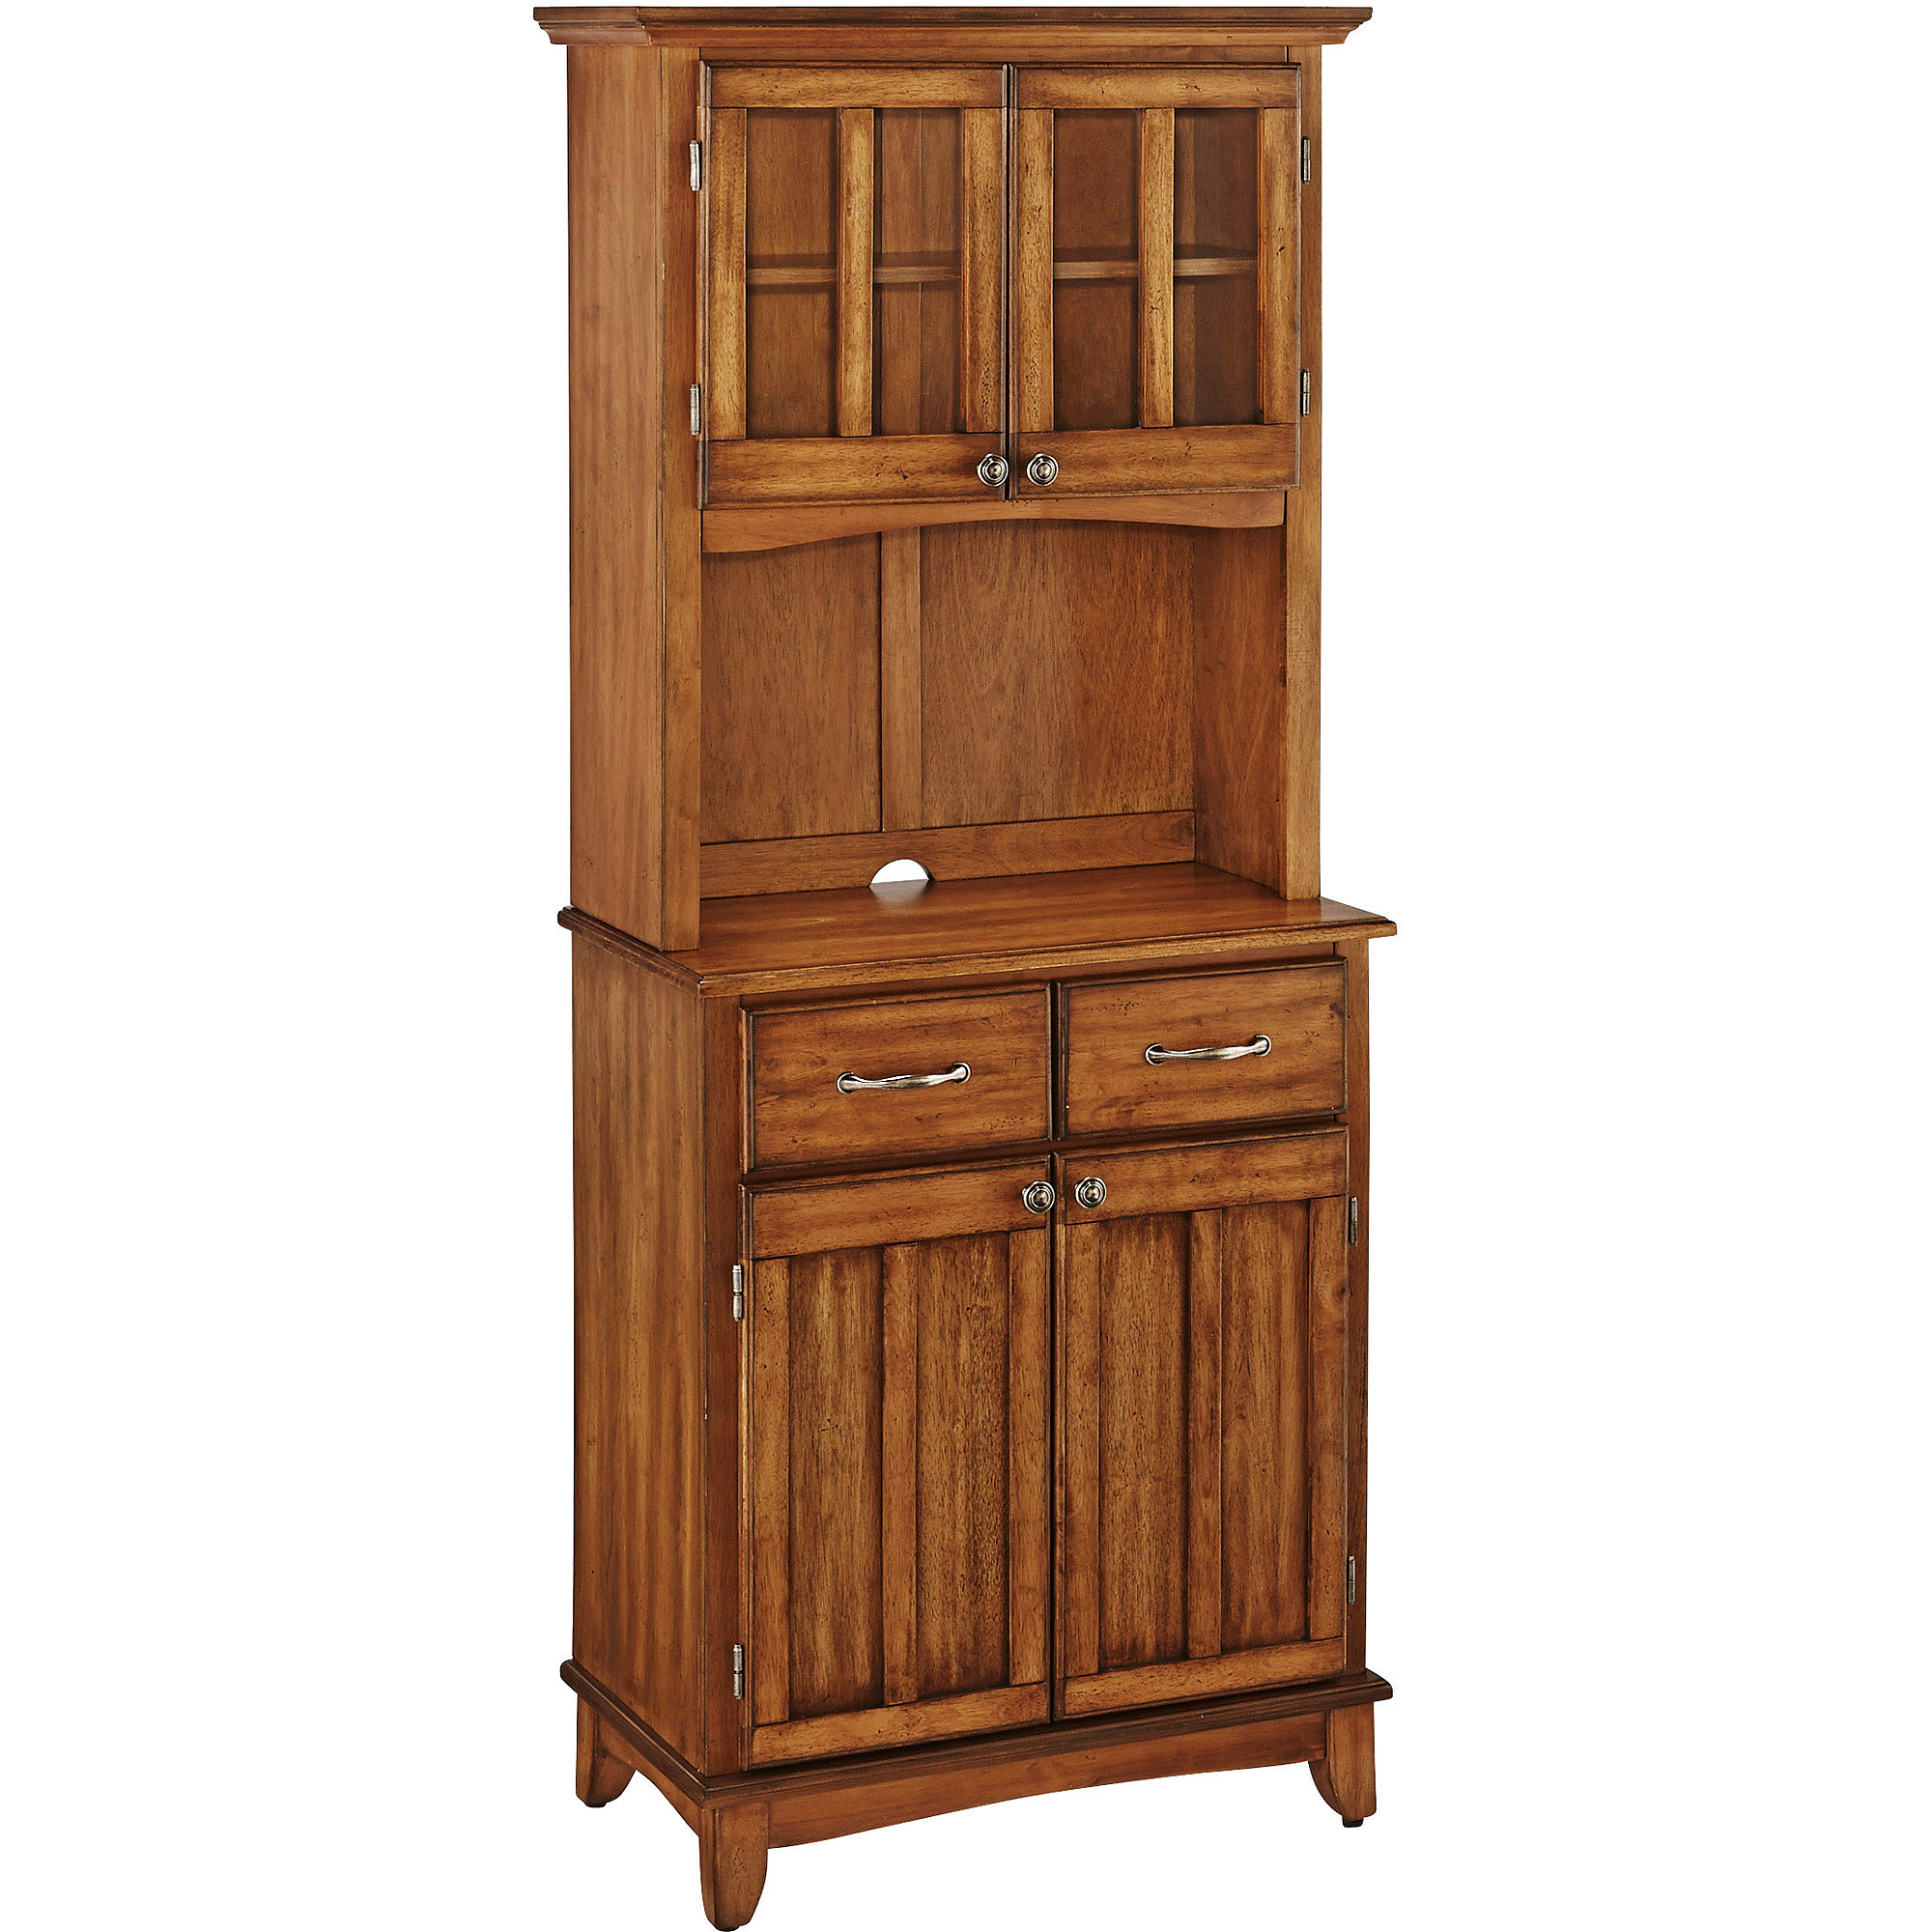 beautiful Small Hutches For Kitchen Part - 9: Home Styles Small Buffet With Two-Door Hutch, Cottage Oak Finish -  Walmart.com